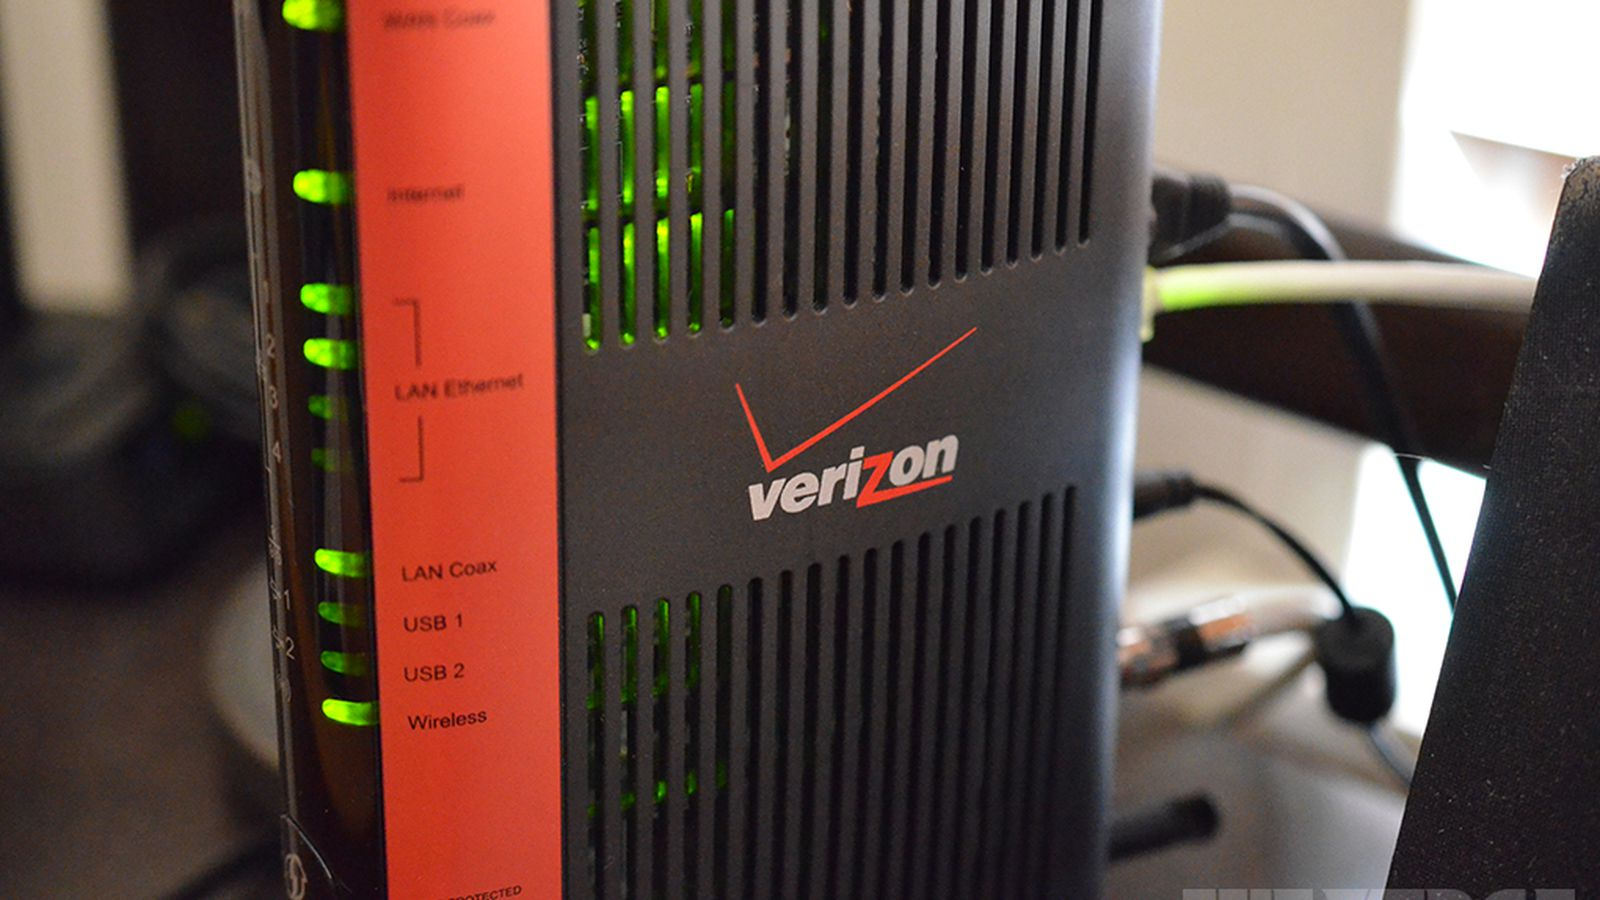 Buy FIOS Verizon Gateway FIOS Quantum-G Repeaters - indianheadprimefavor.tk FREE DELIVERY possible on eligible purchases.